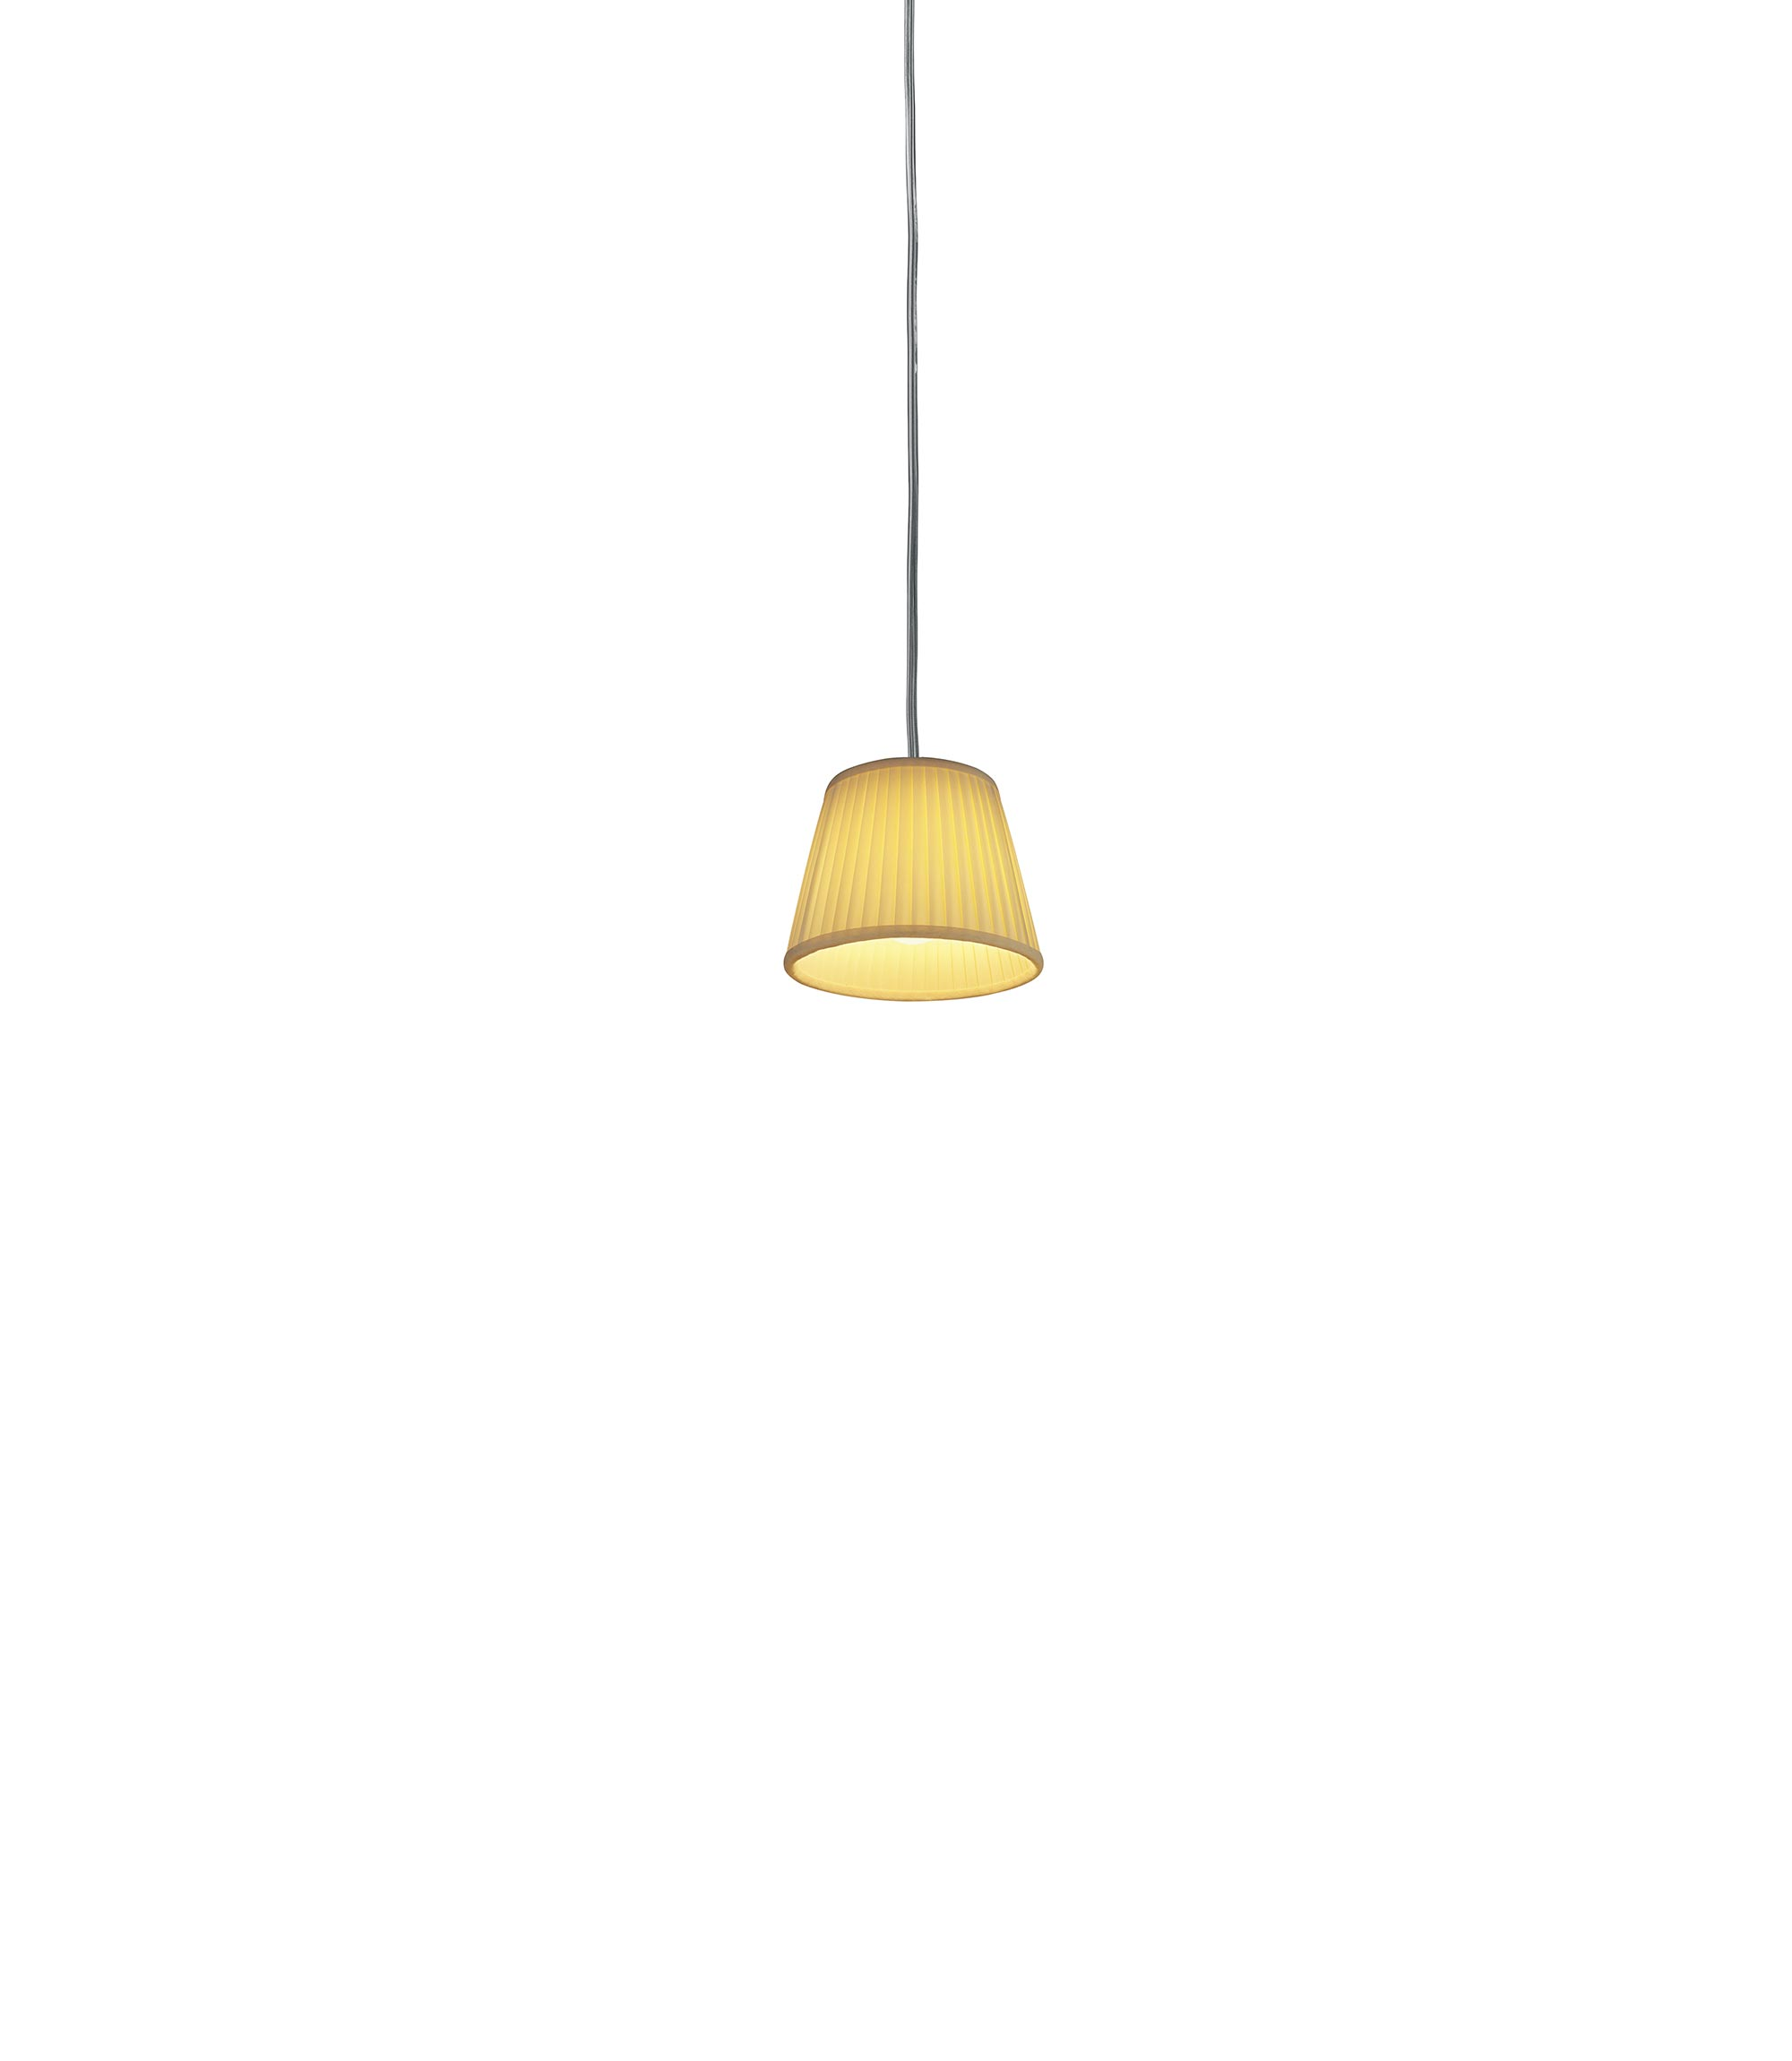 Romeo babe soft suspension starck flos F6124007 product still life big